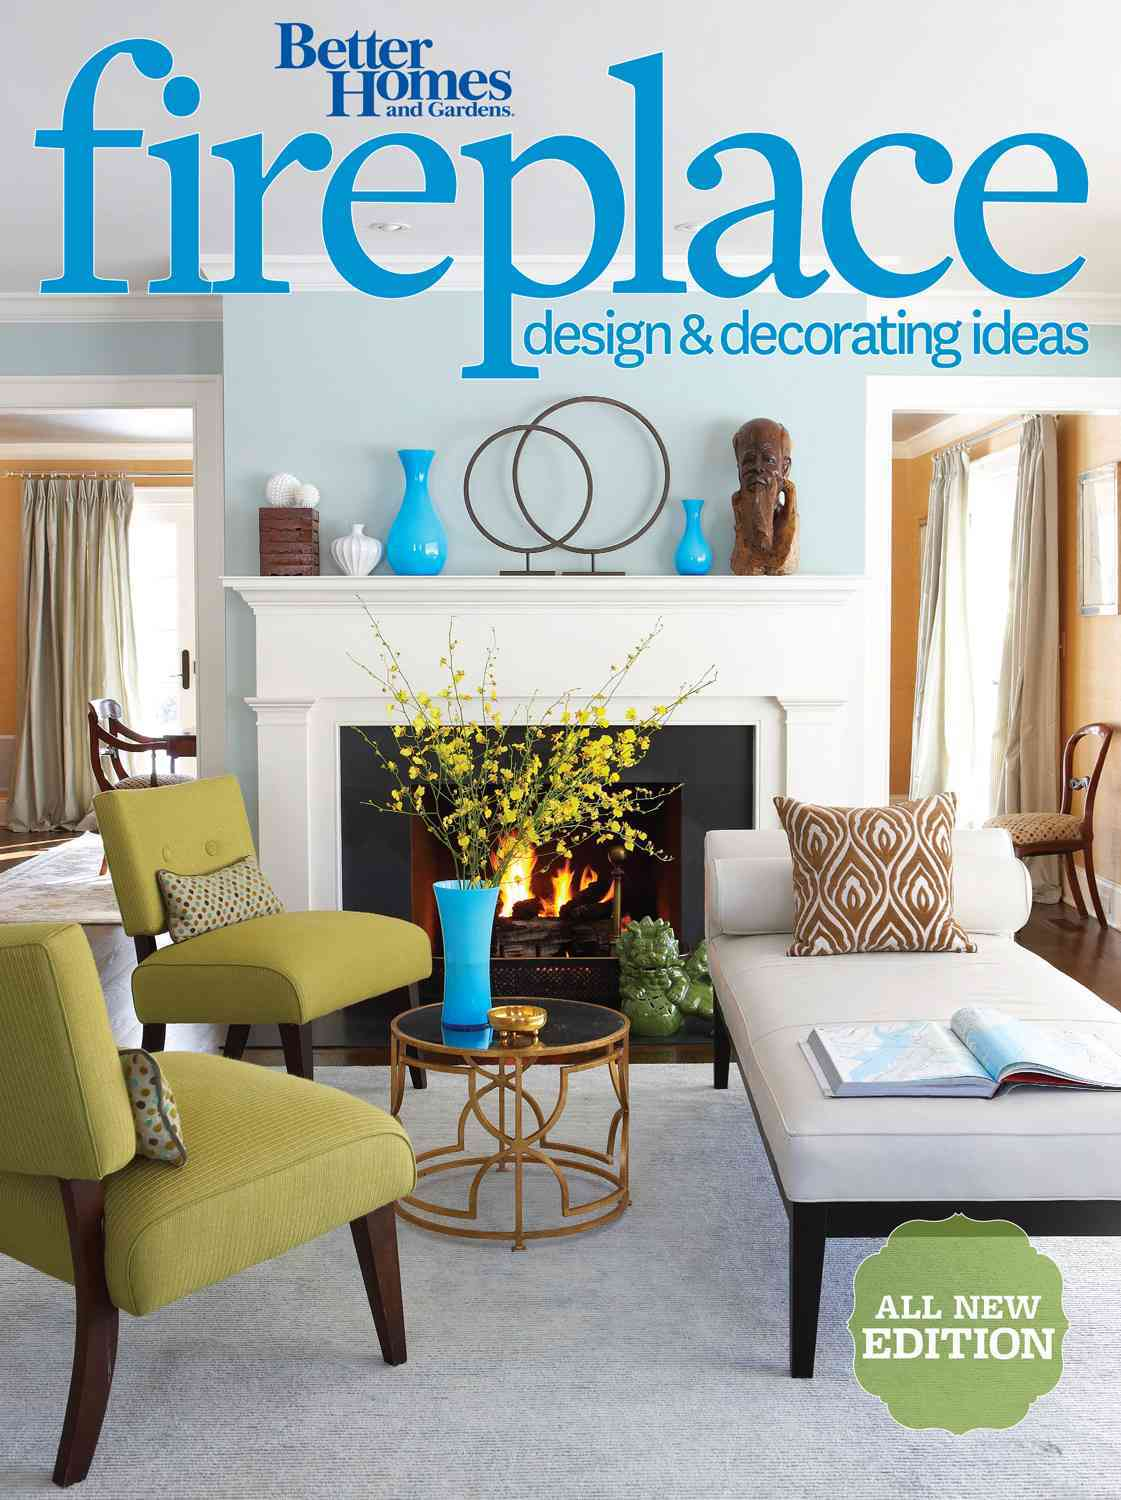 Better Homes and Gardens Fireplace Design & Decorating Ideas By Better Homes and Gardens Books (COR)